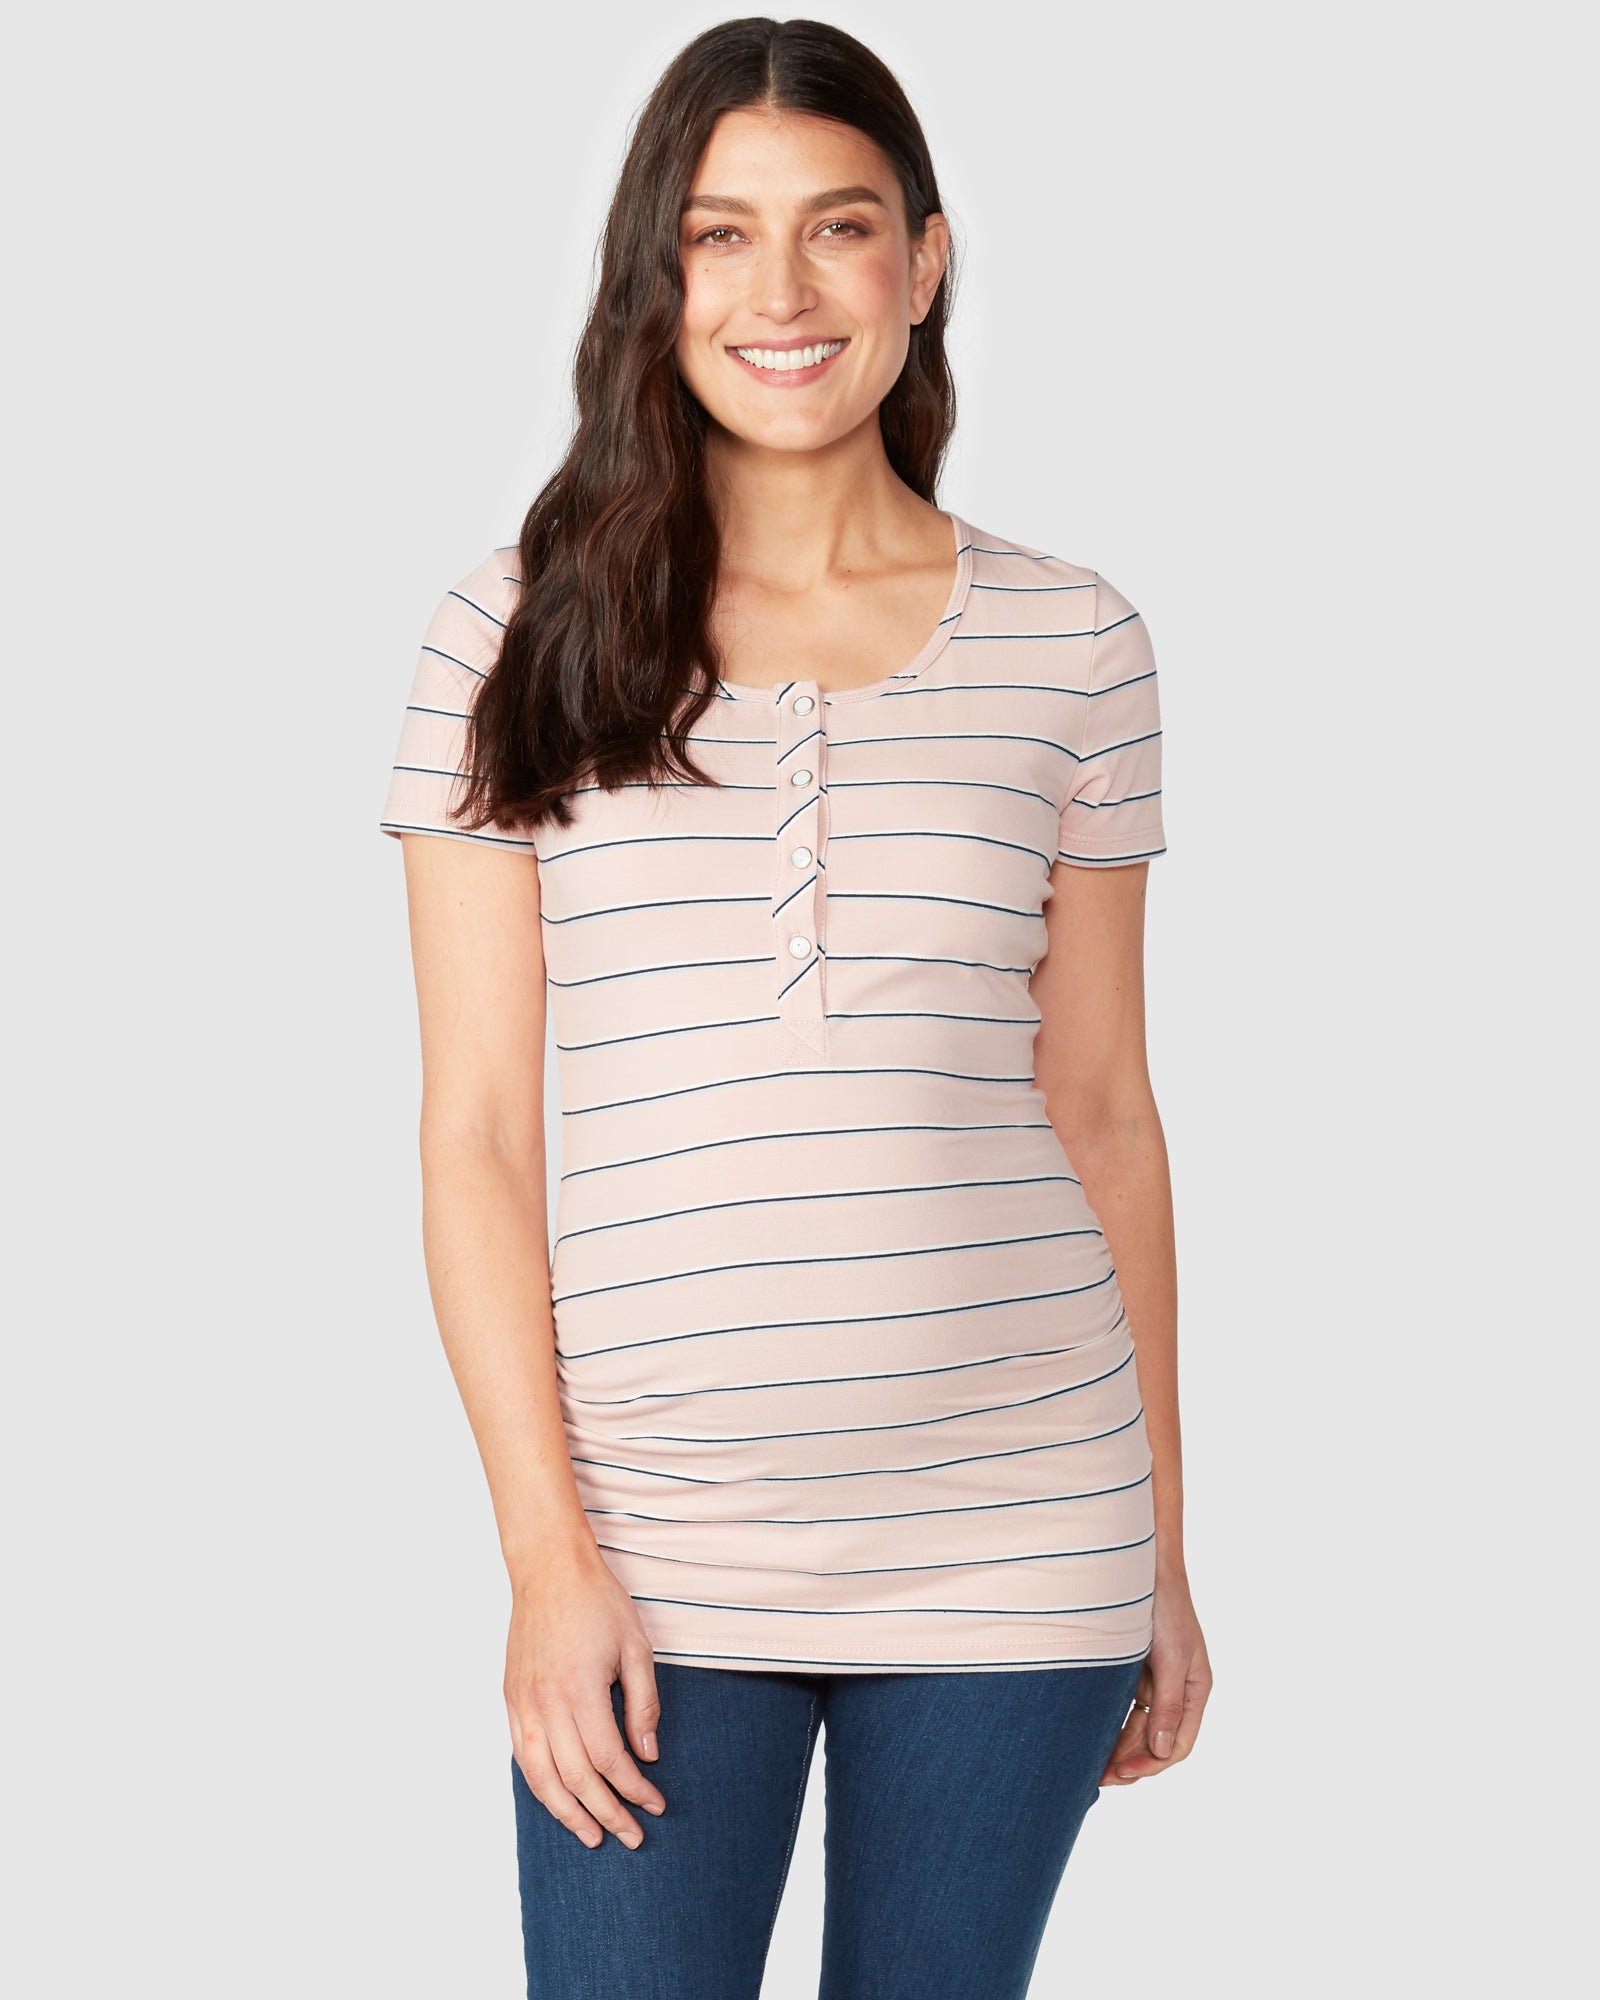 Hattie Nursing Tee